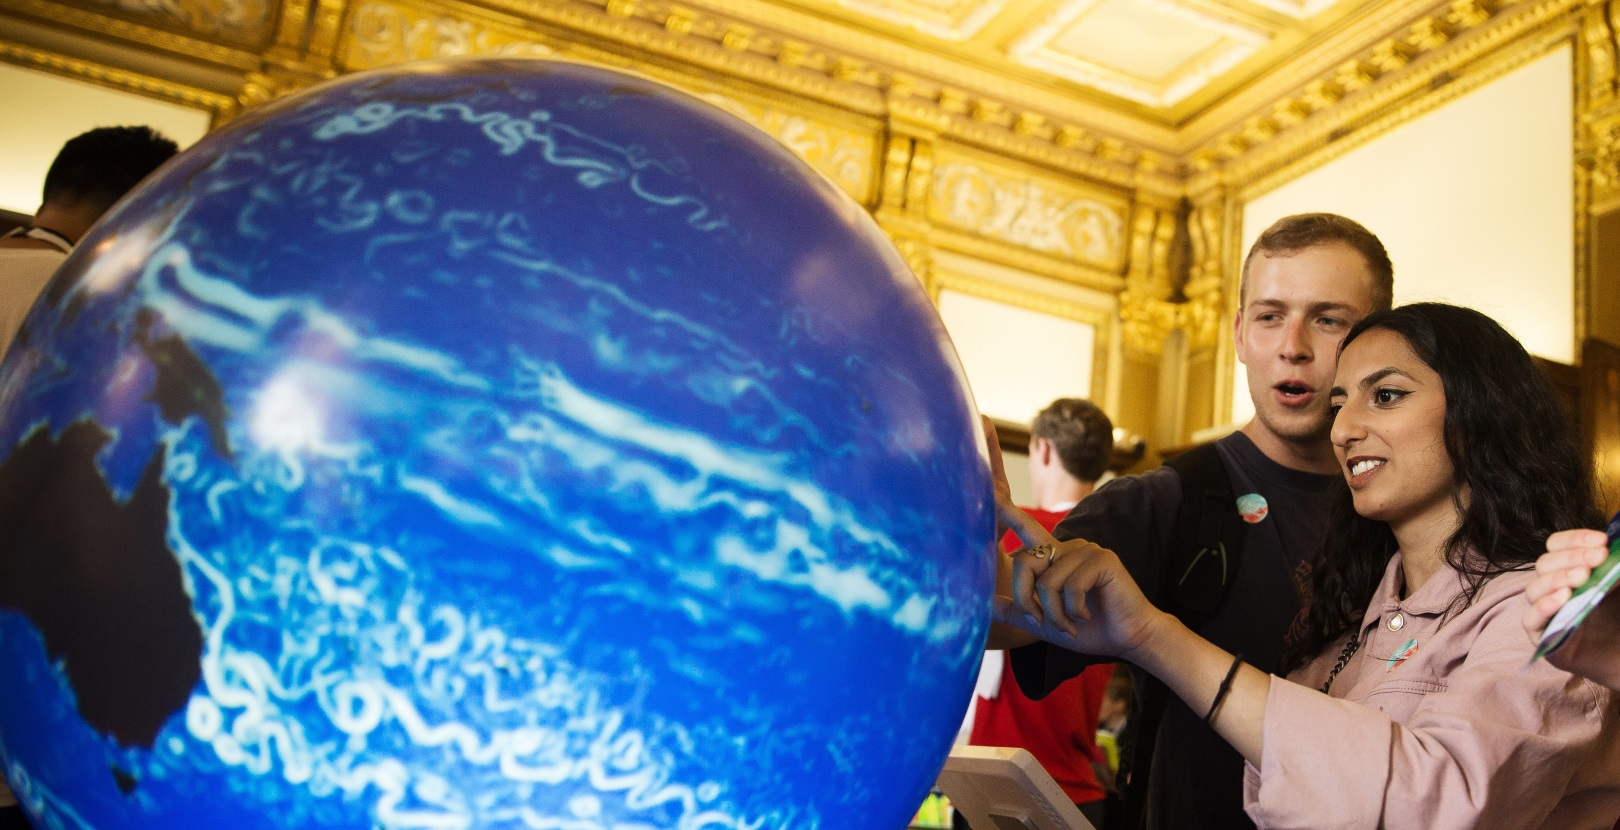 Visitors at the Royal Society's Summer Science Exhibition